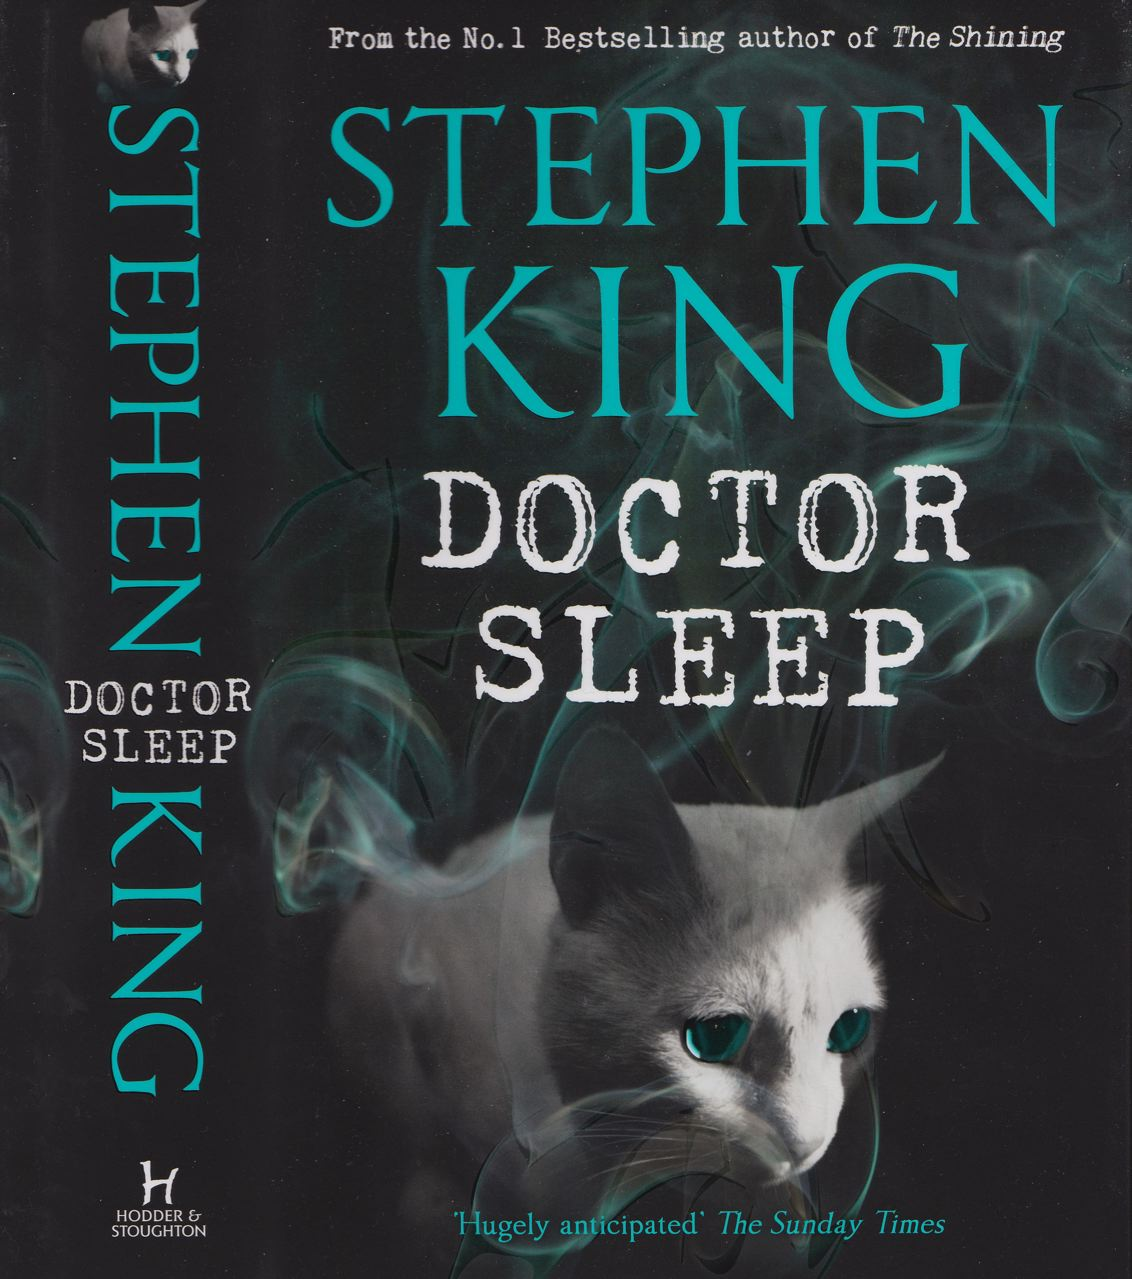 Stephen King Book Cover With Fifties Style Blue Car